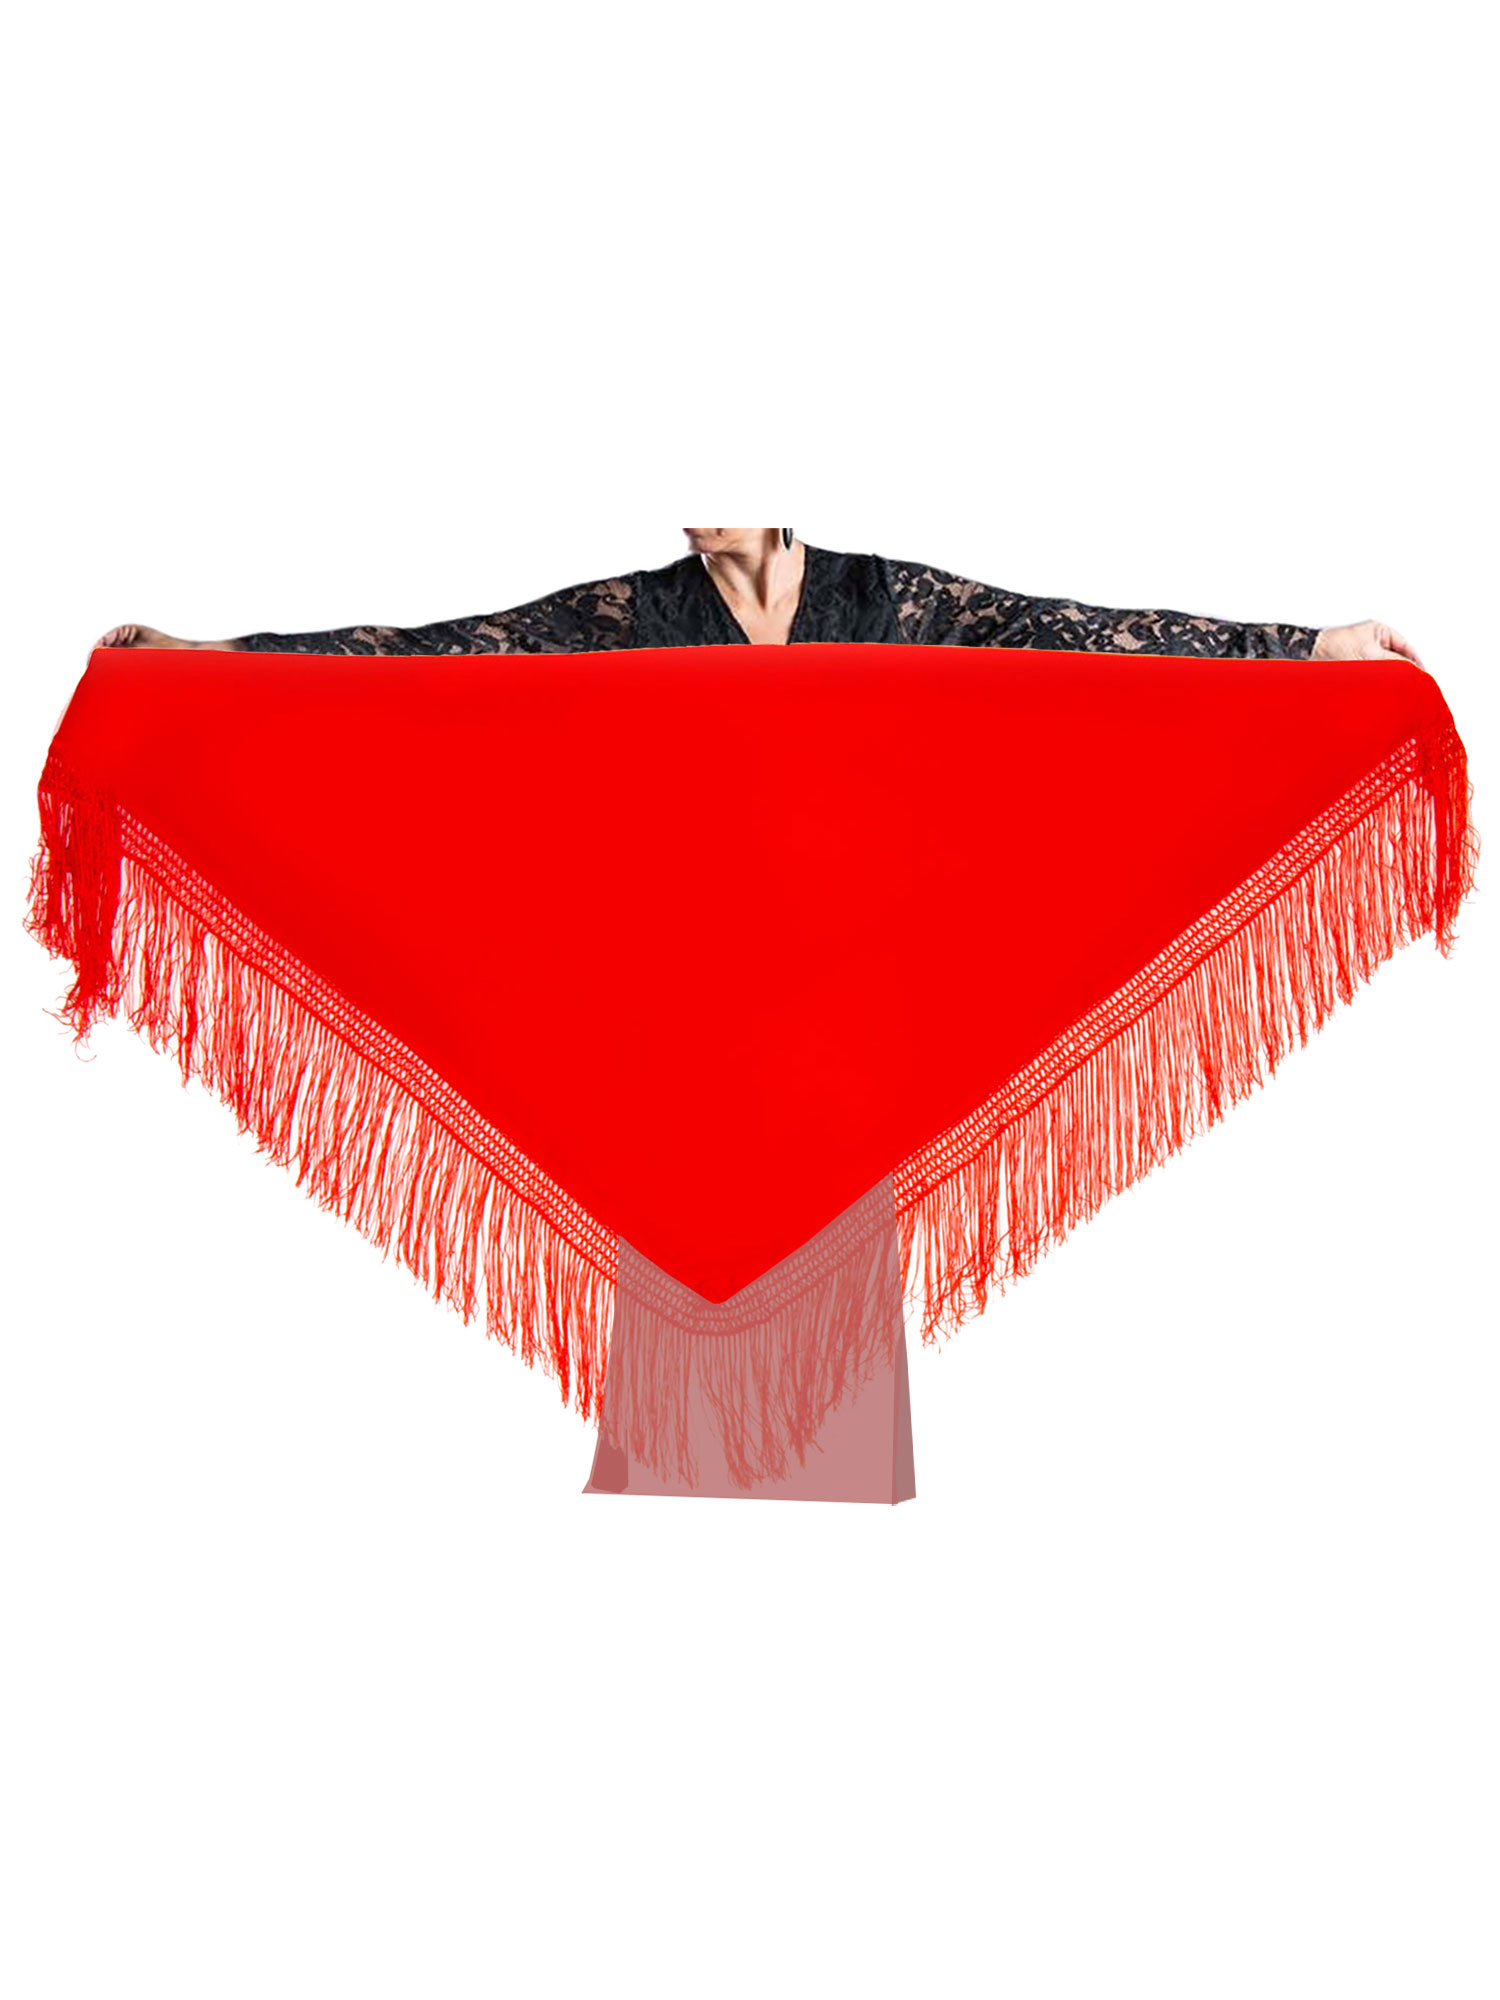 flamenco shawl red 150 x 70